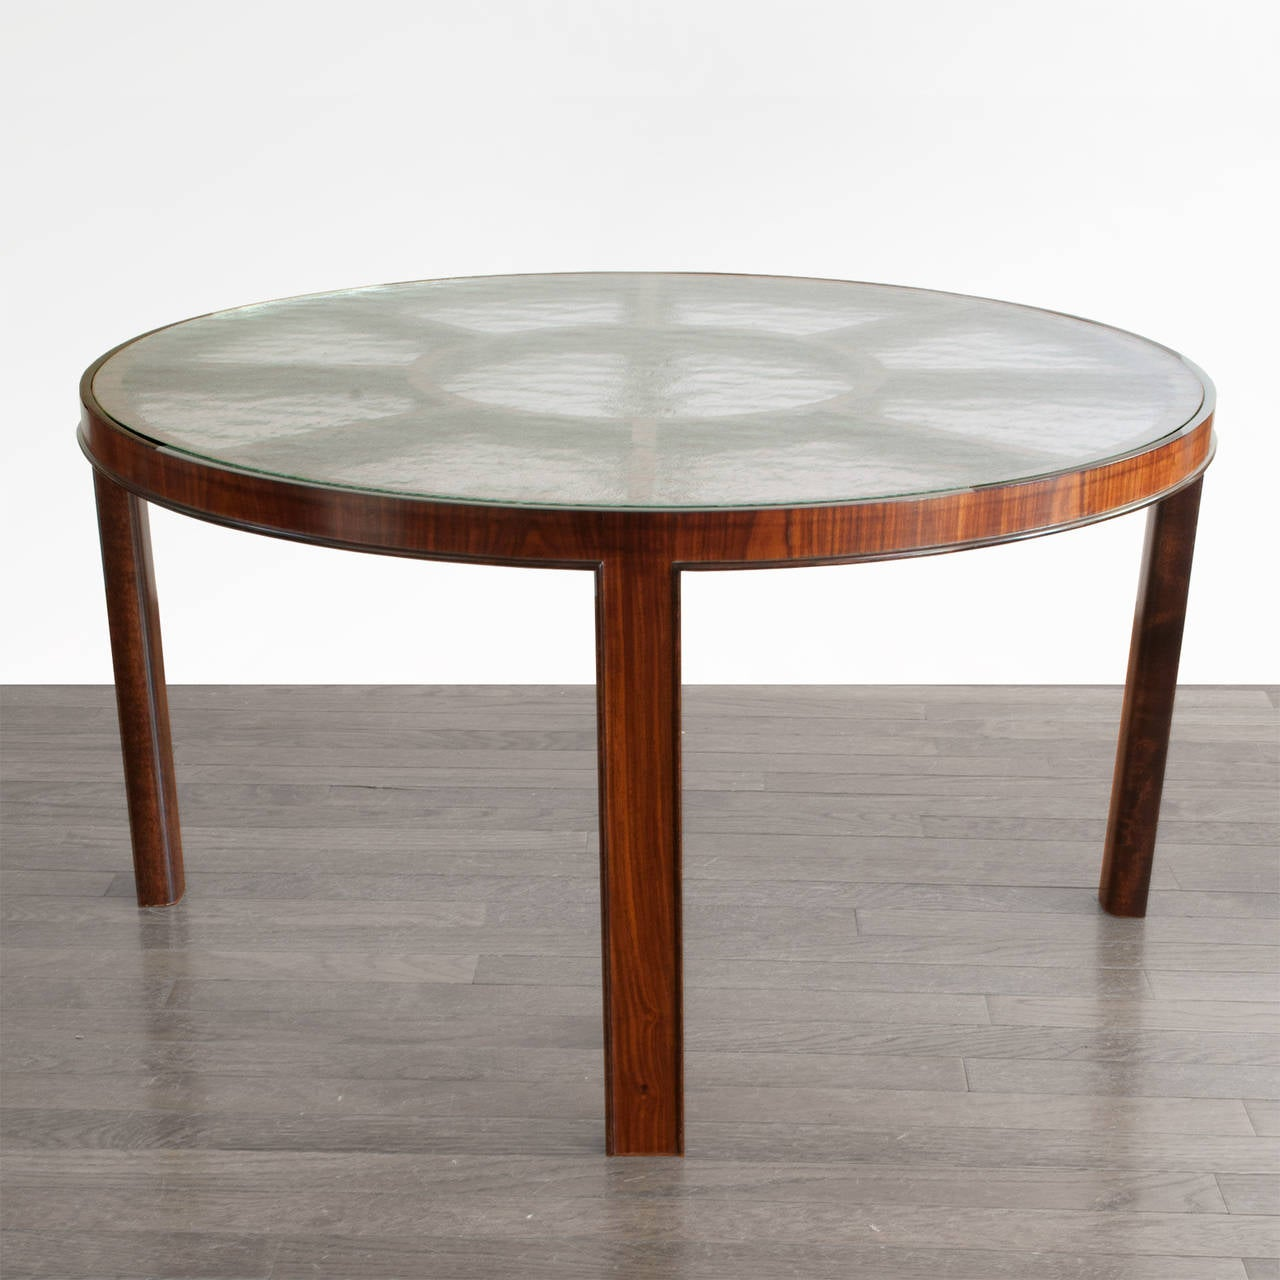 swedish art deco rosewood coffee table original textured glass at 1stdibs. Black Bedroom Furniture Sets. Home Design Ideas